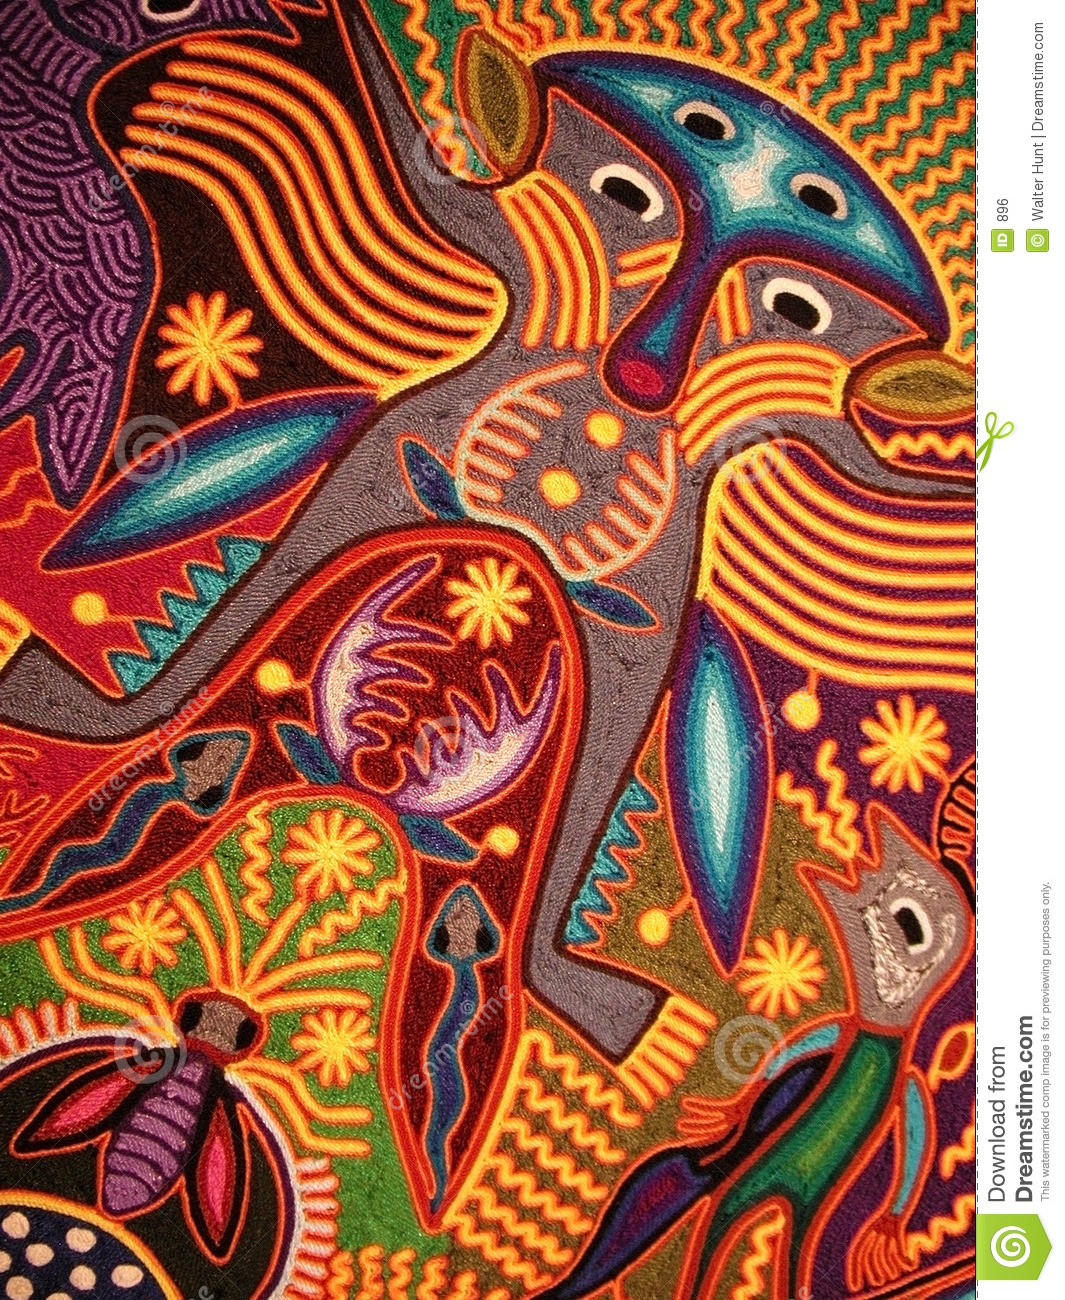 Huichol dream